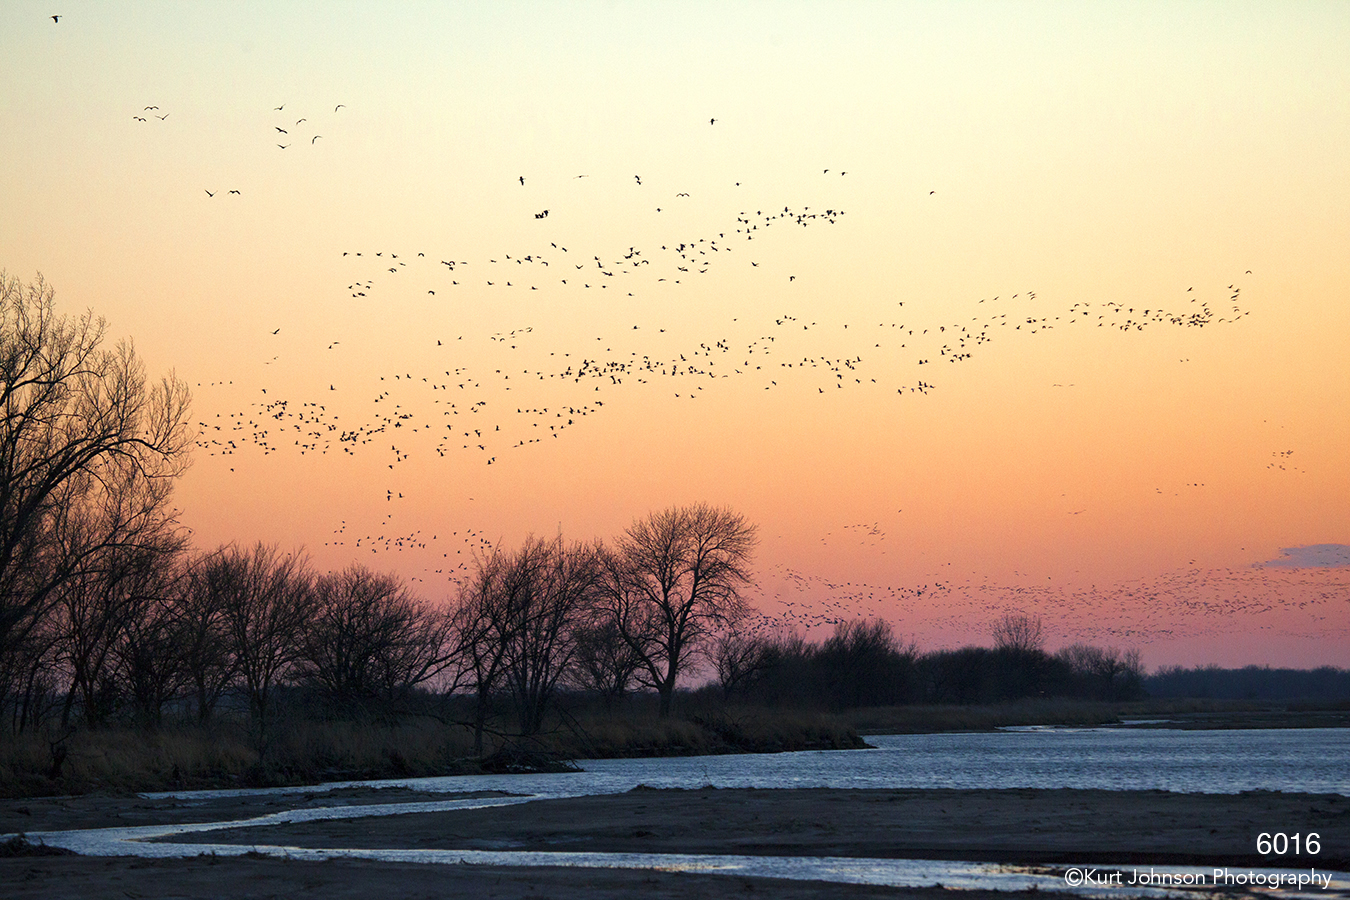 landscape sunset cranes birds wildlife nebraska water river pink